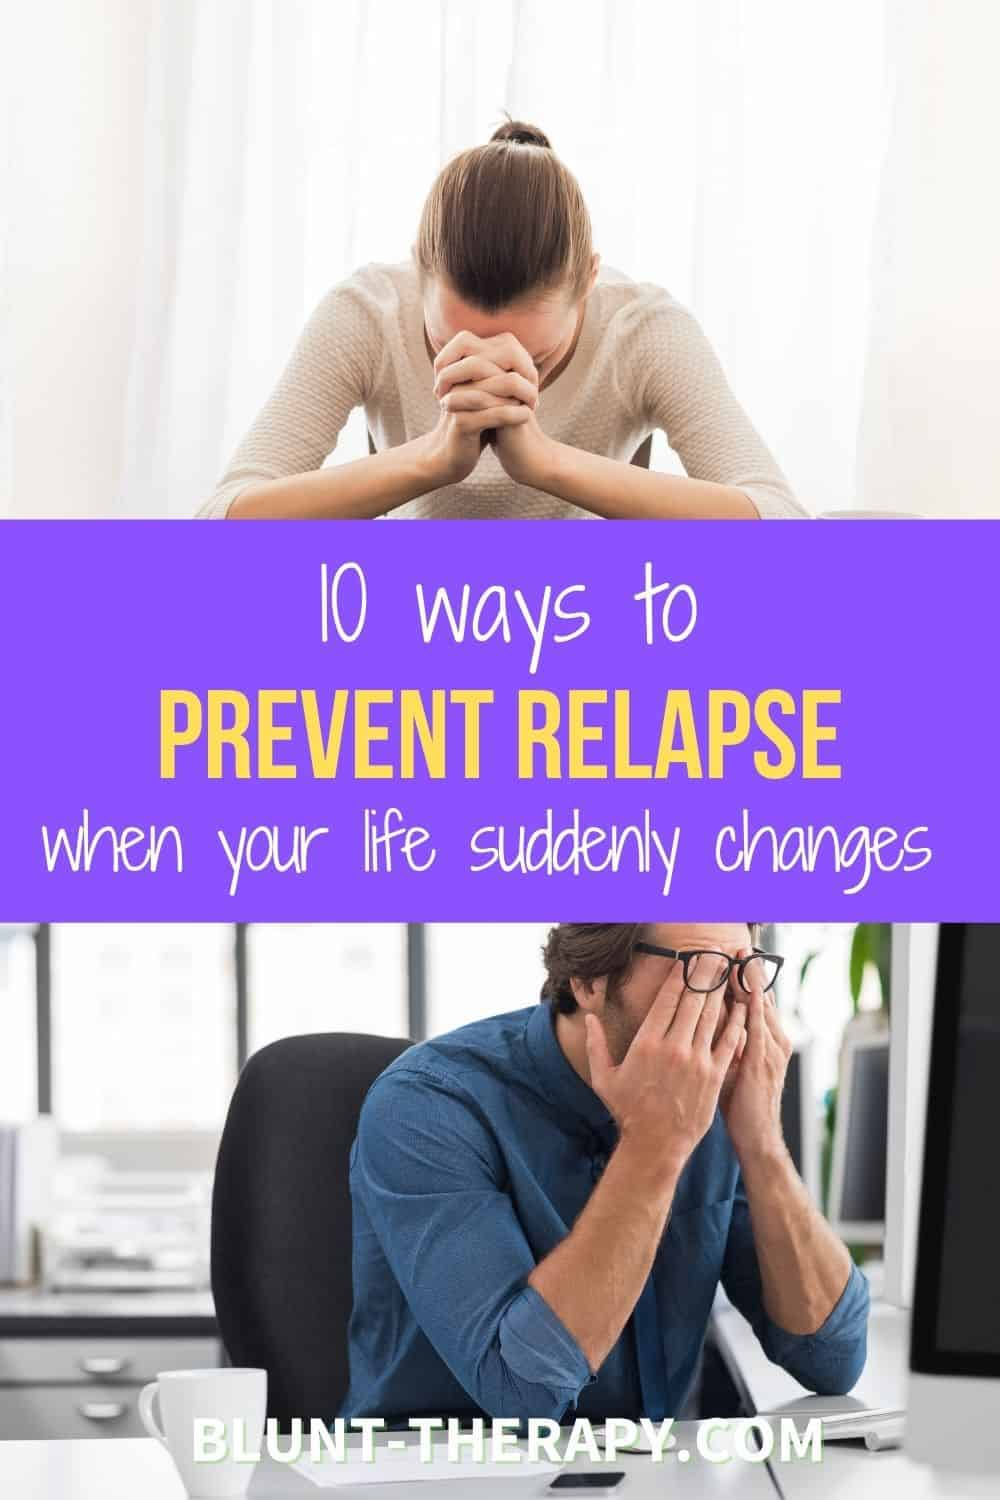 10 Ways To Prevent Relapse When Life Suddenly Changes